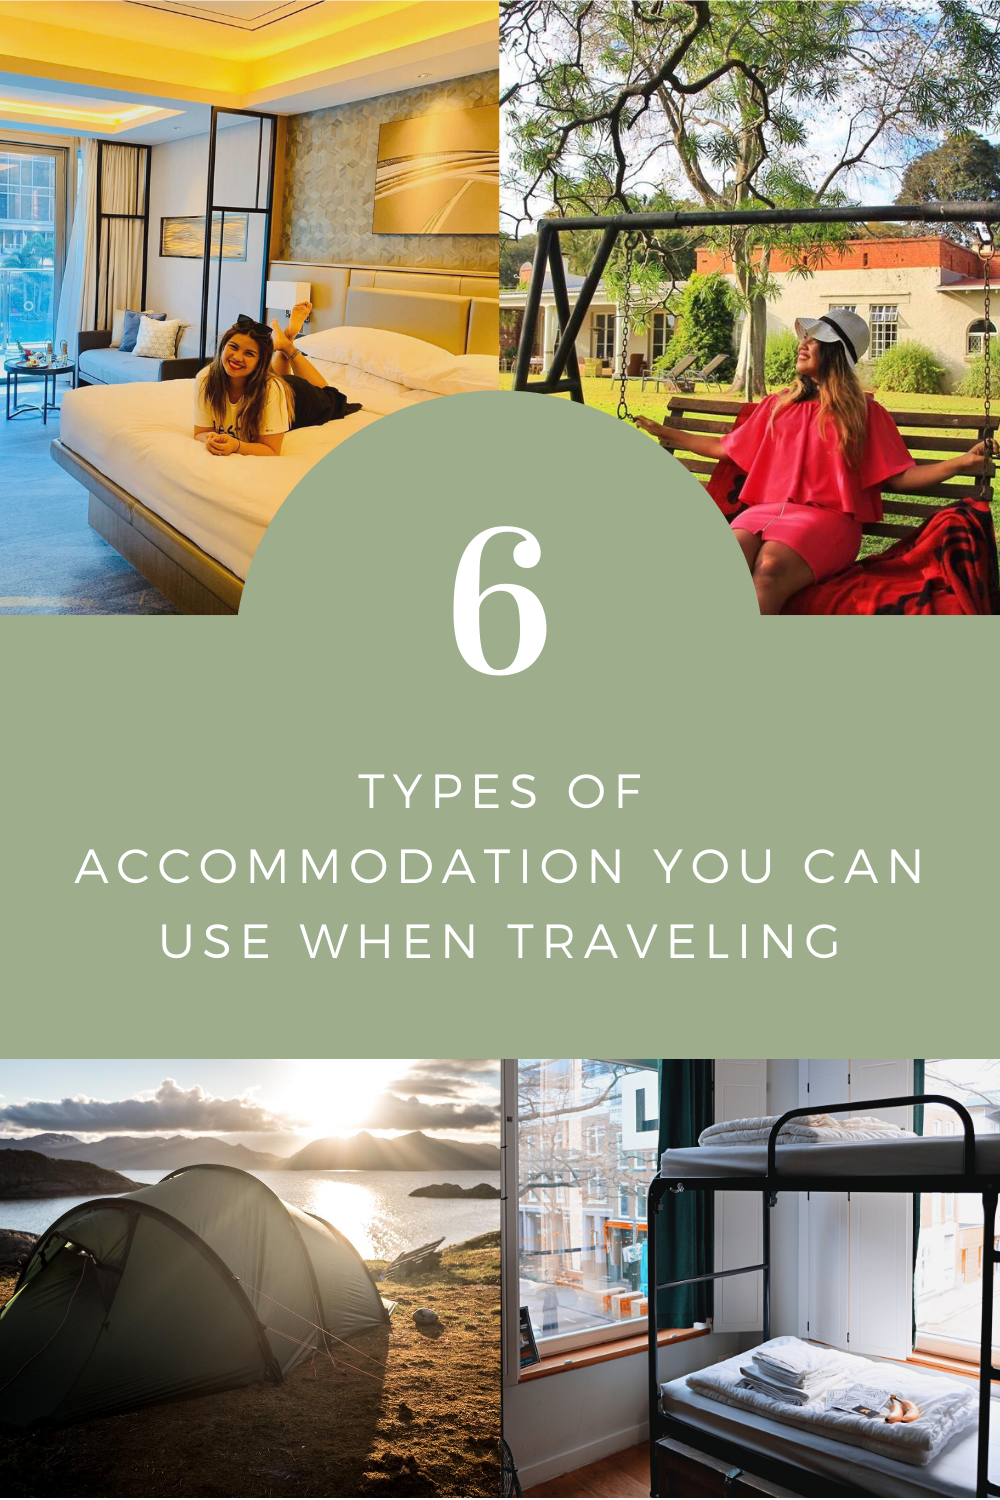 6 Types of Accommodation You Can Use When Traveling